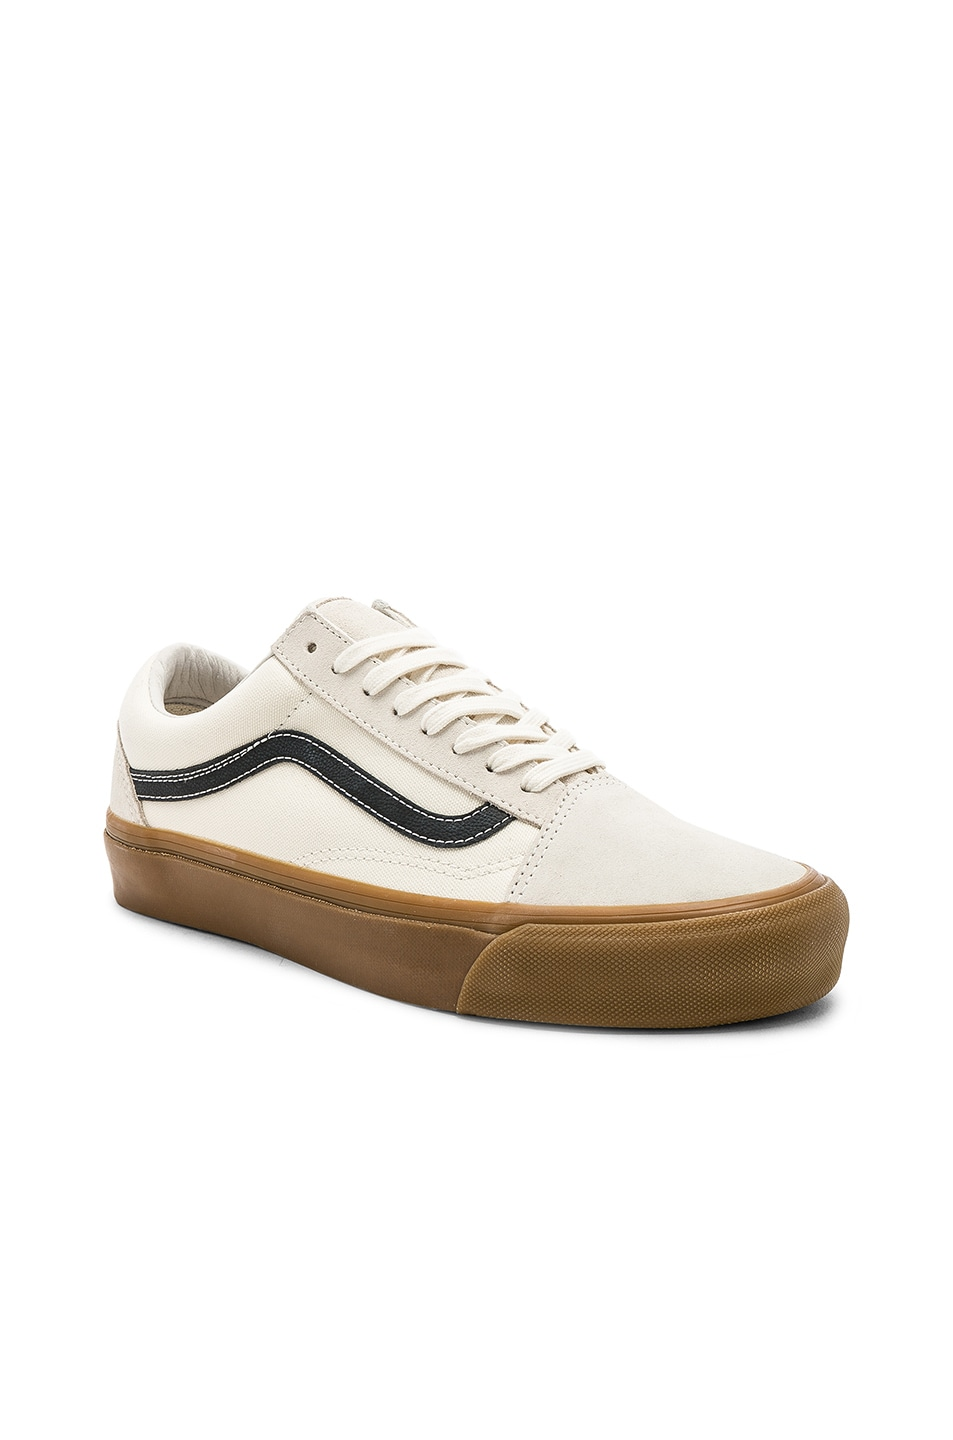 5c4192ae5e319f Image 1 of Vans Vault OG Old Skool LX in Marshmallow   Light Gum